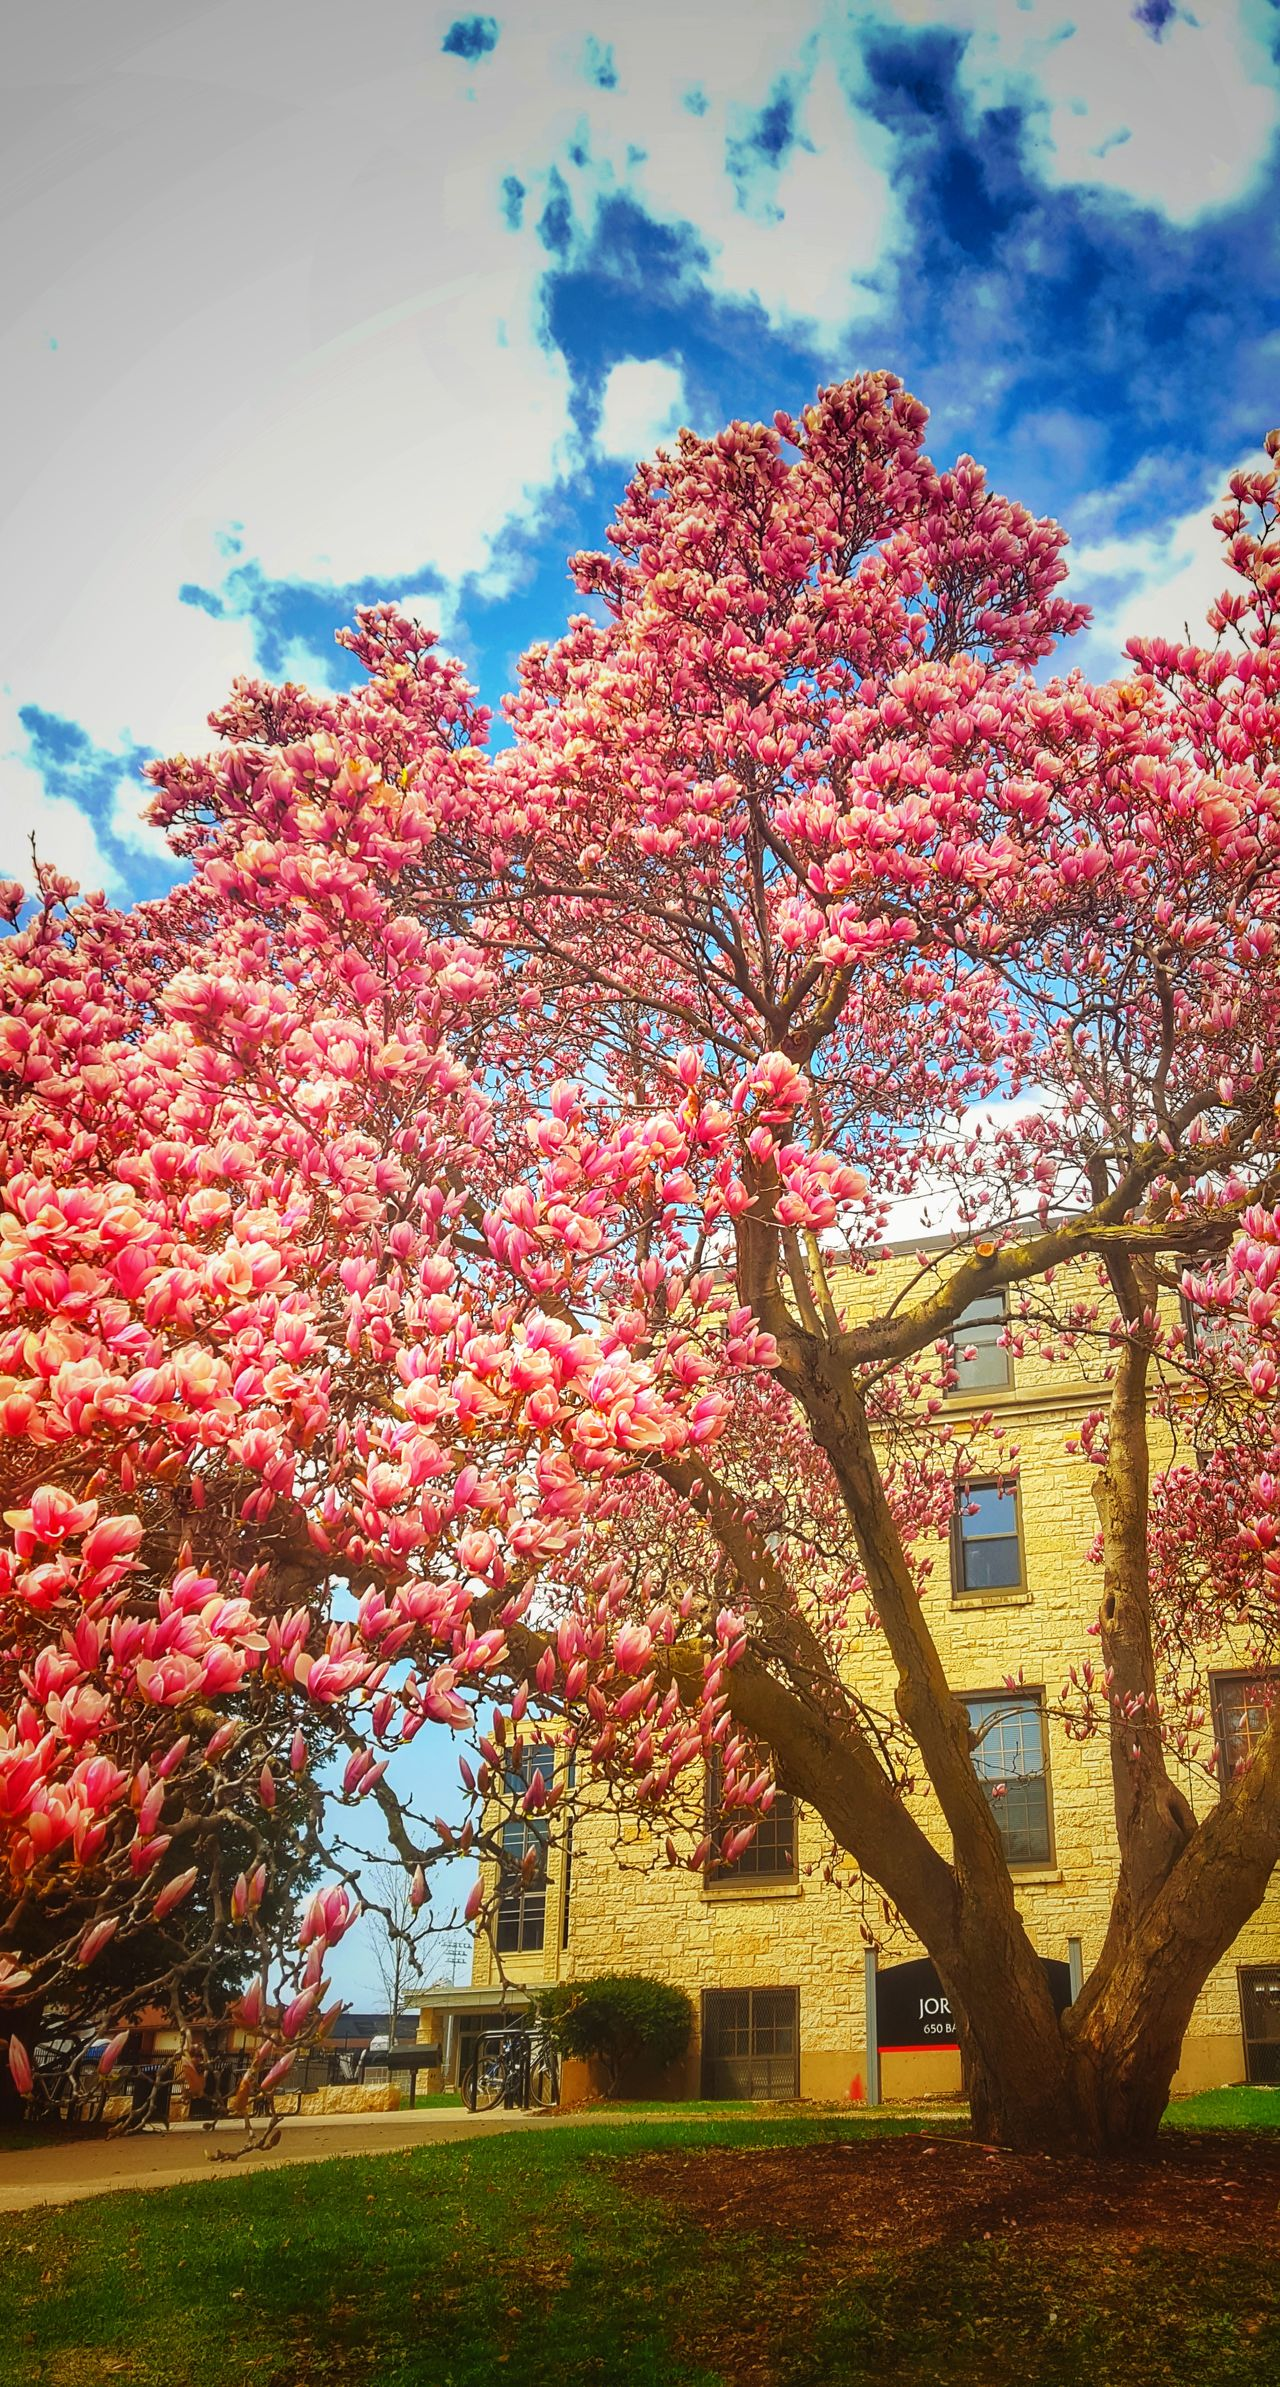 Edits Beauty In Nature Tree Lilytree Flowertrees Outdoors Nature Low Angle View Lunchtime Walk Springtime AndroidPhotography